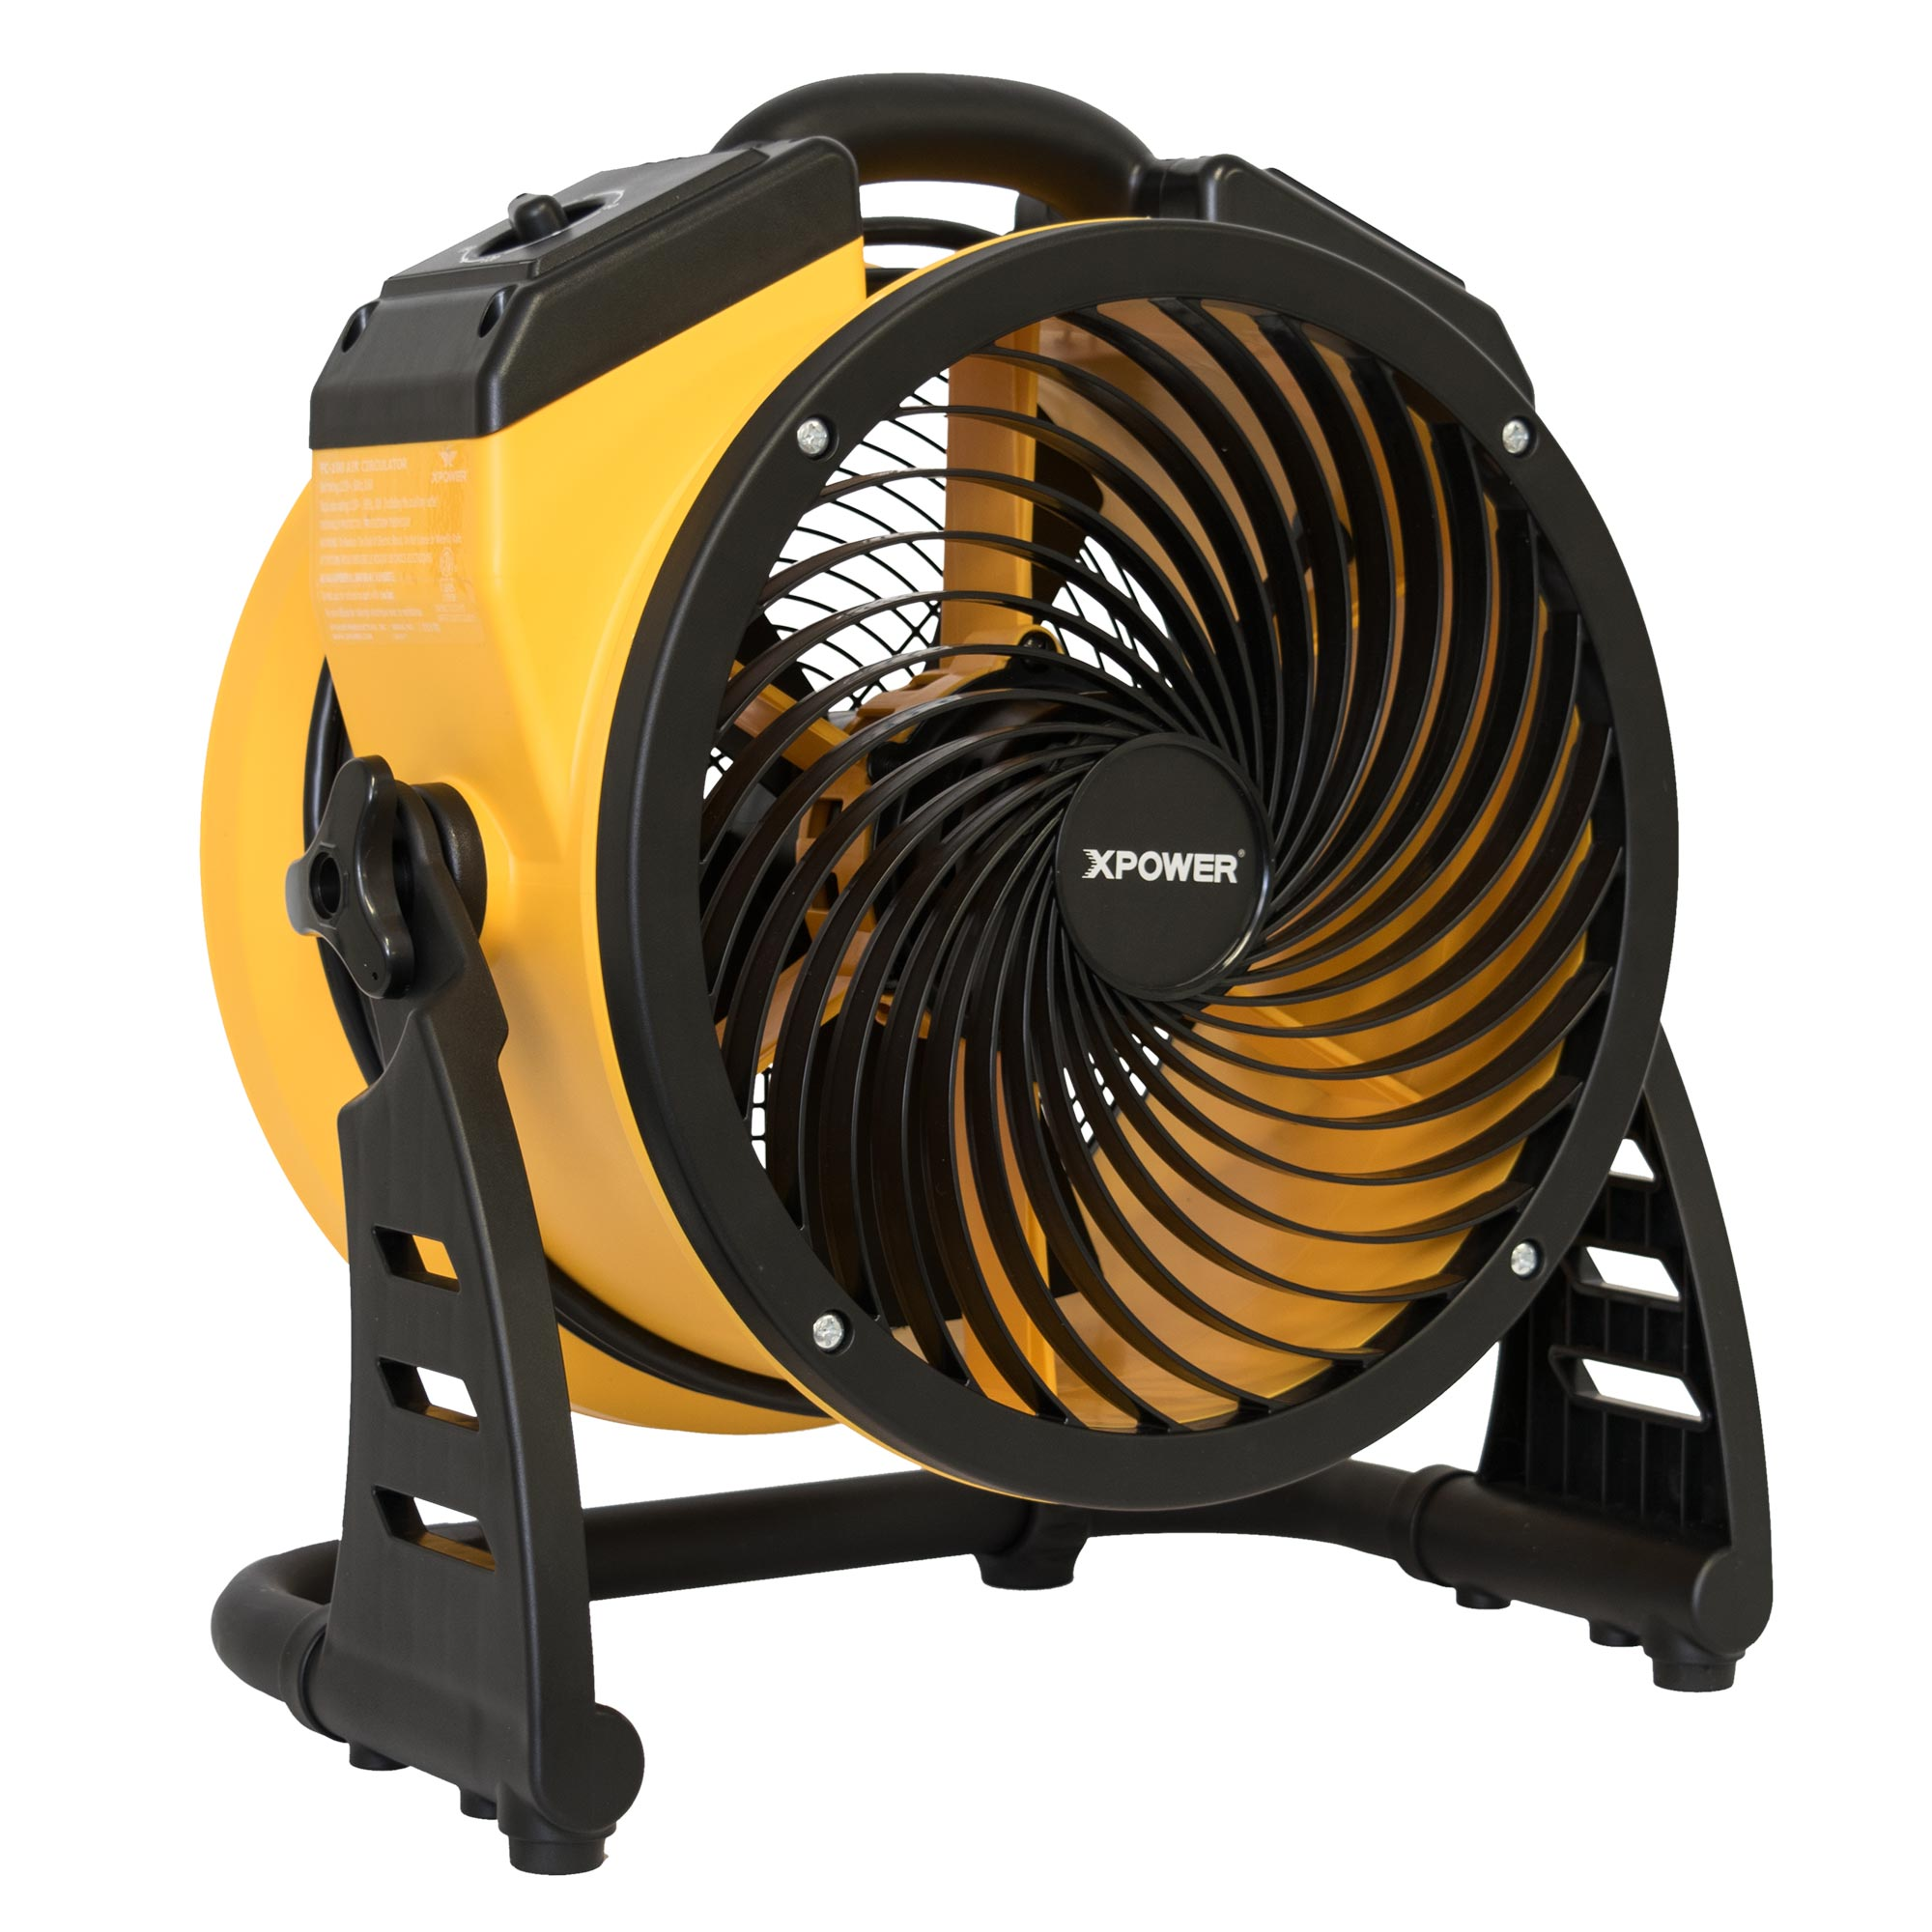 flood-fire-restoration-utility-fans-and-blowers.jpg